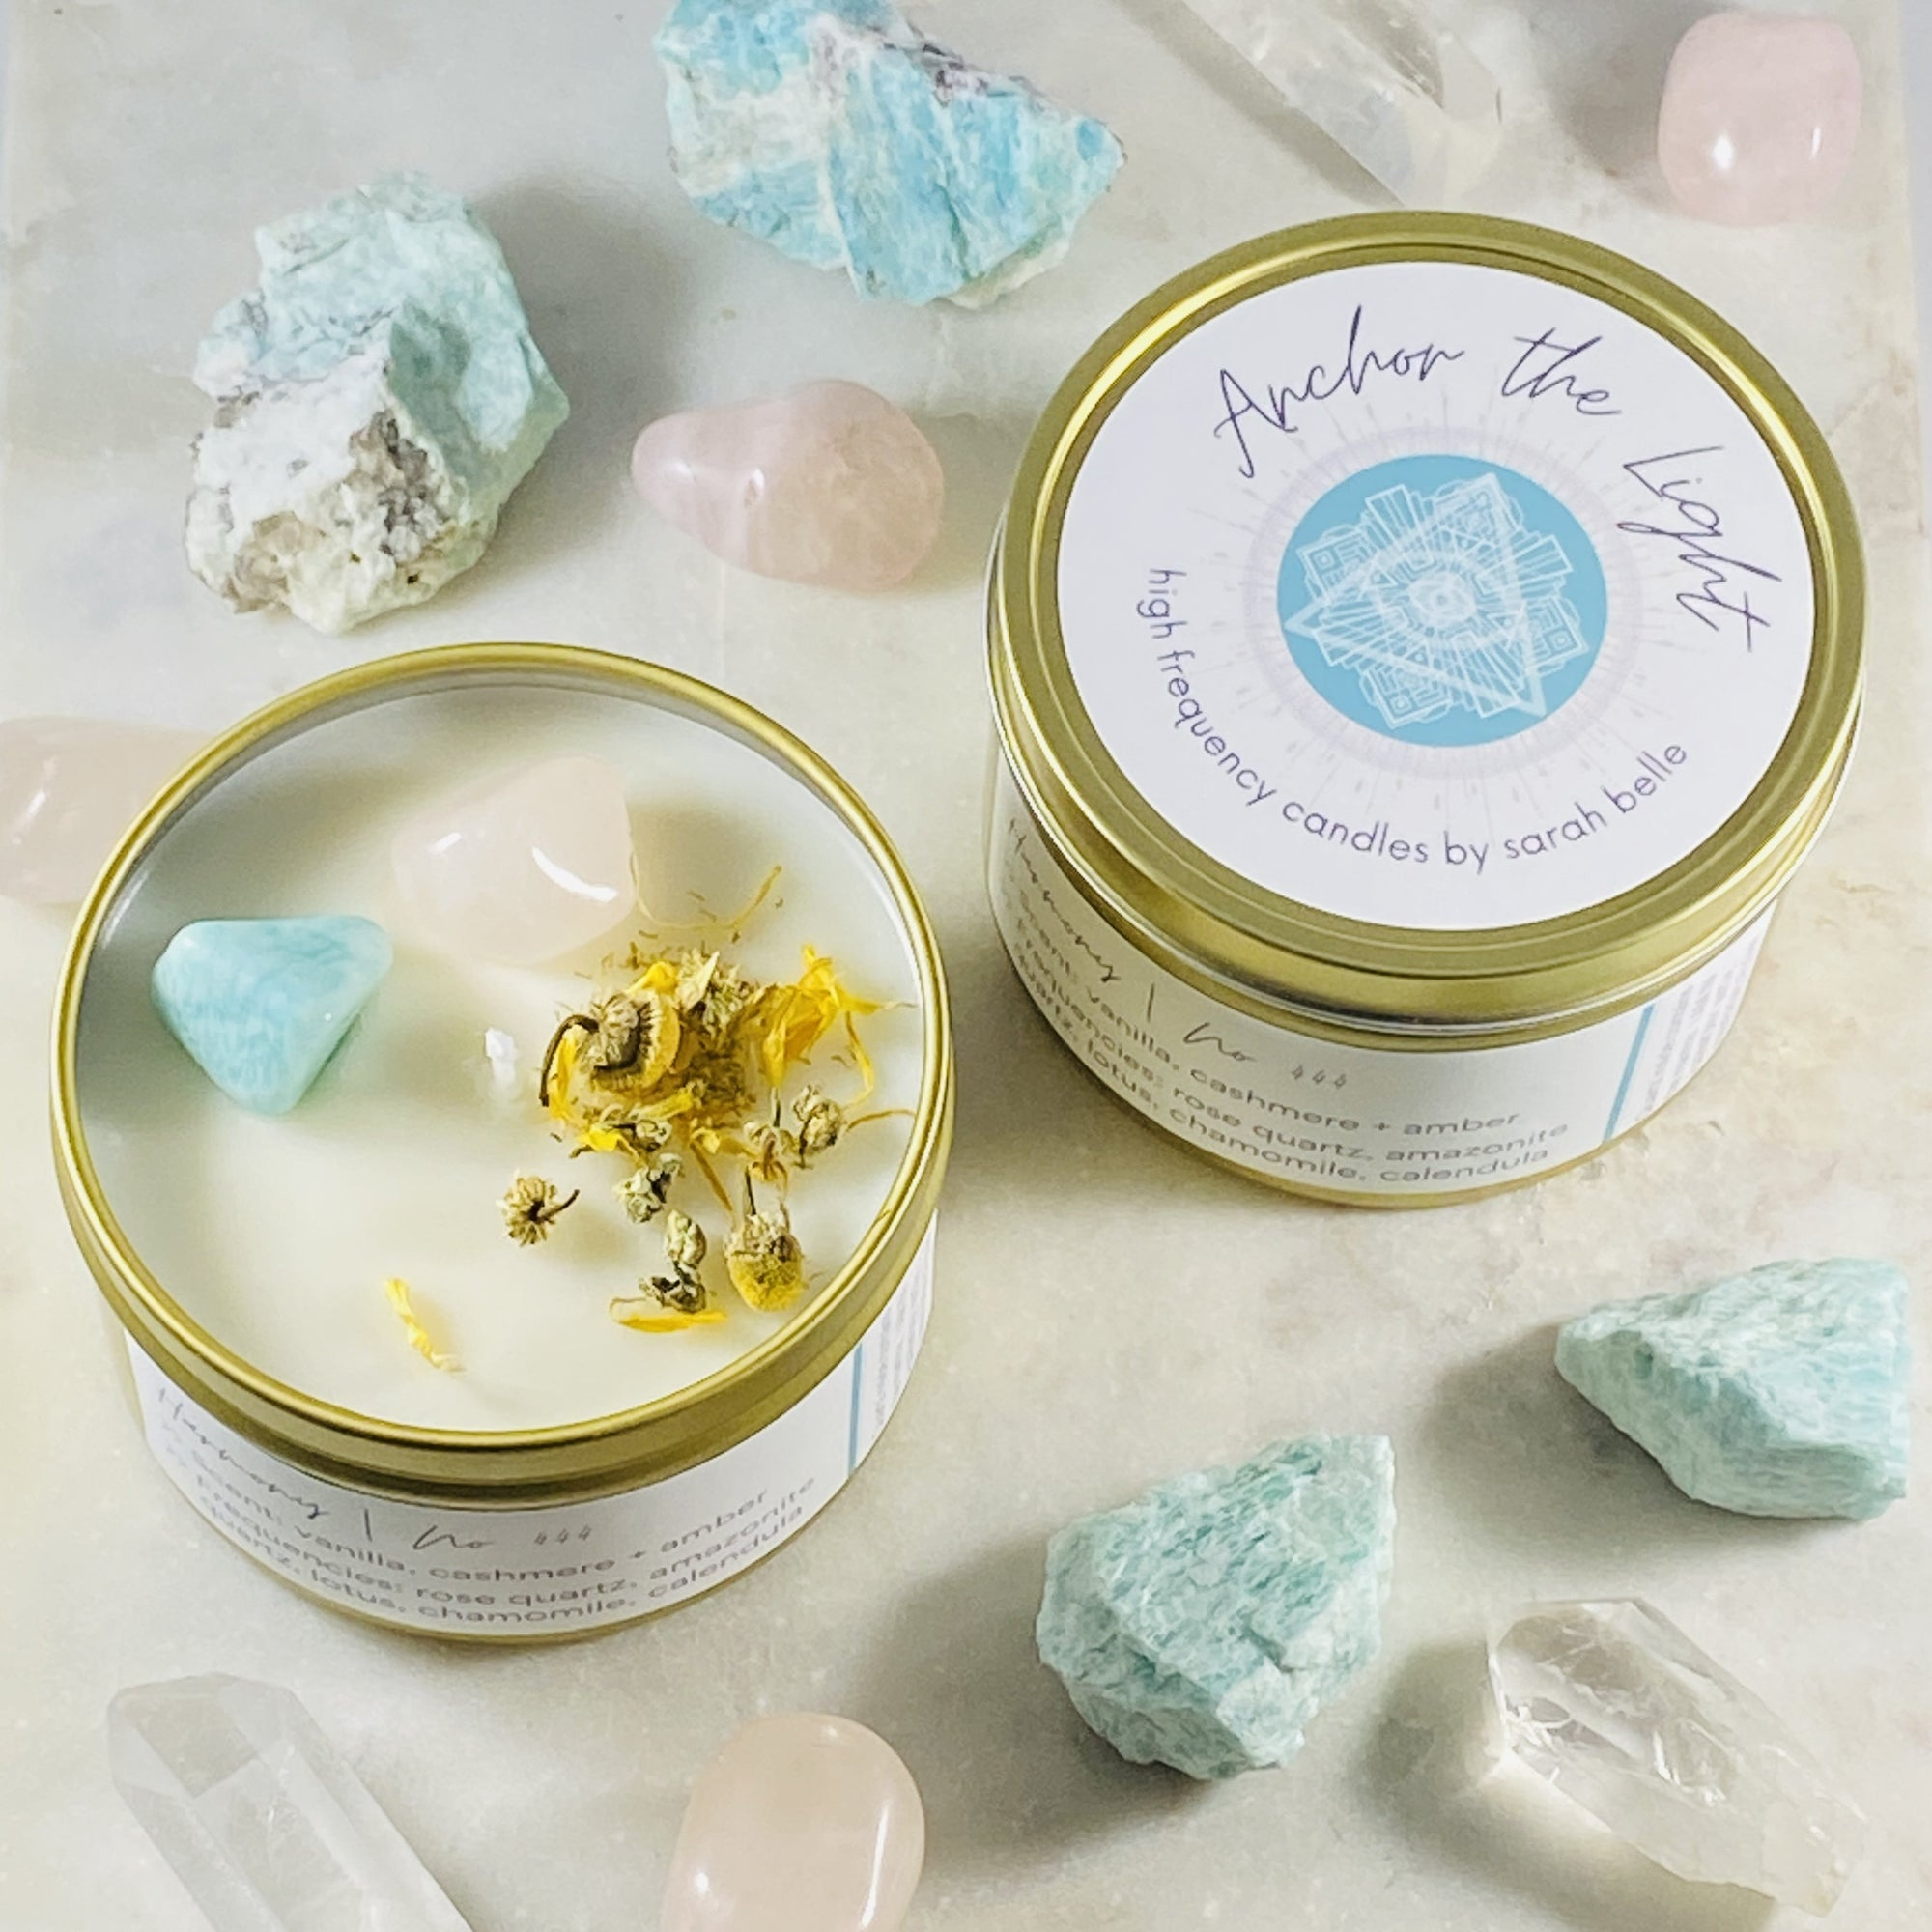 anchor the light harmony candle hand poured by sarah belle